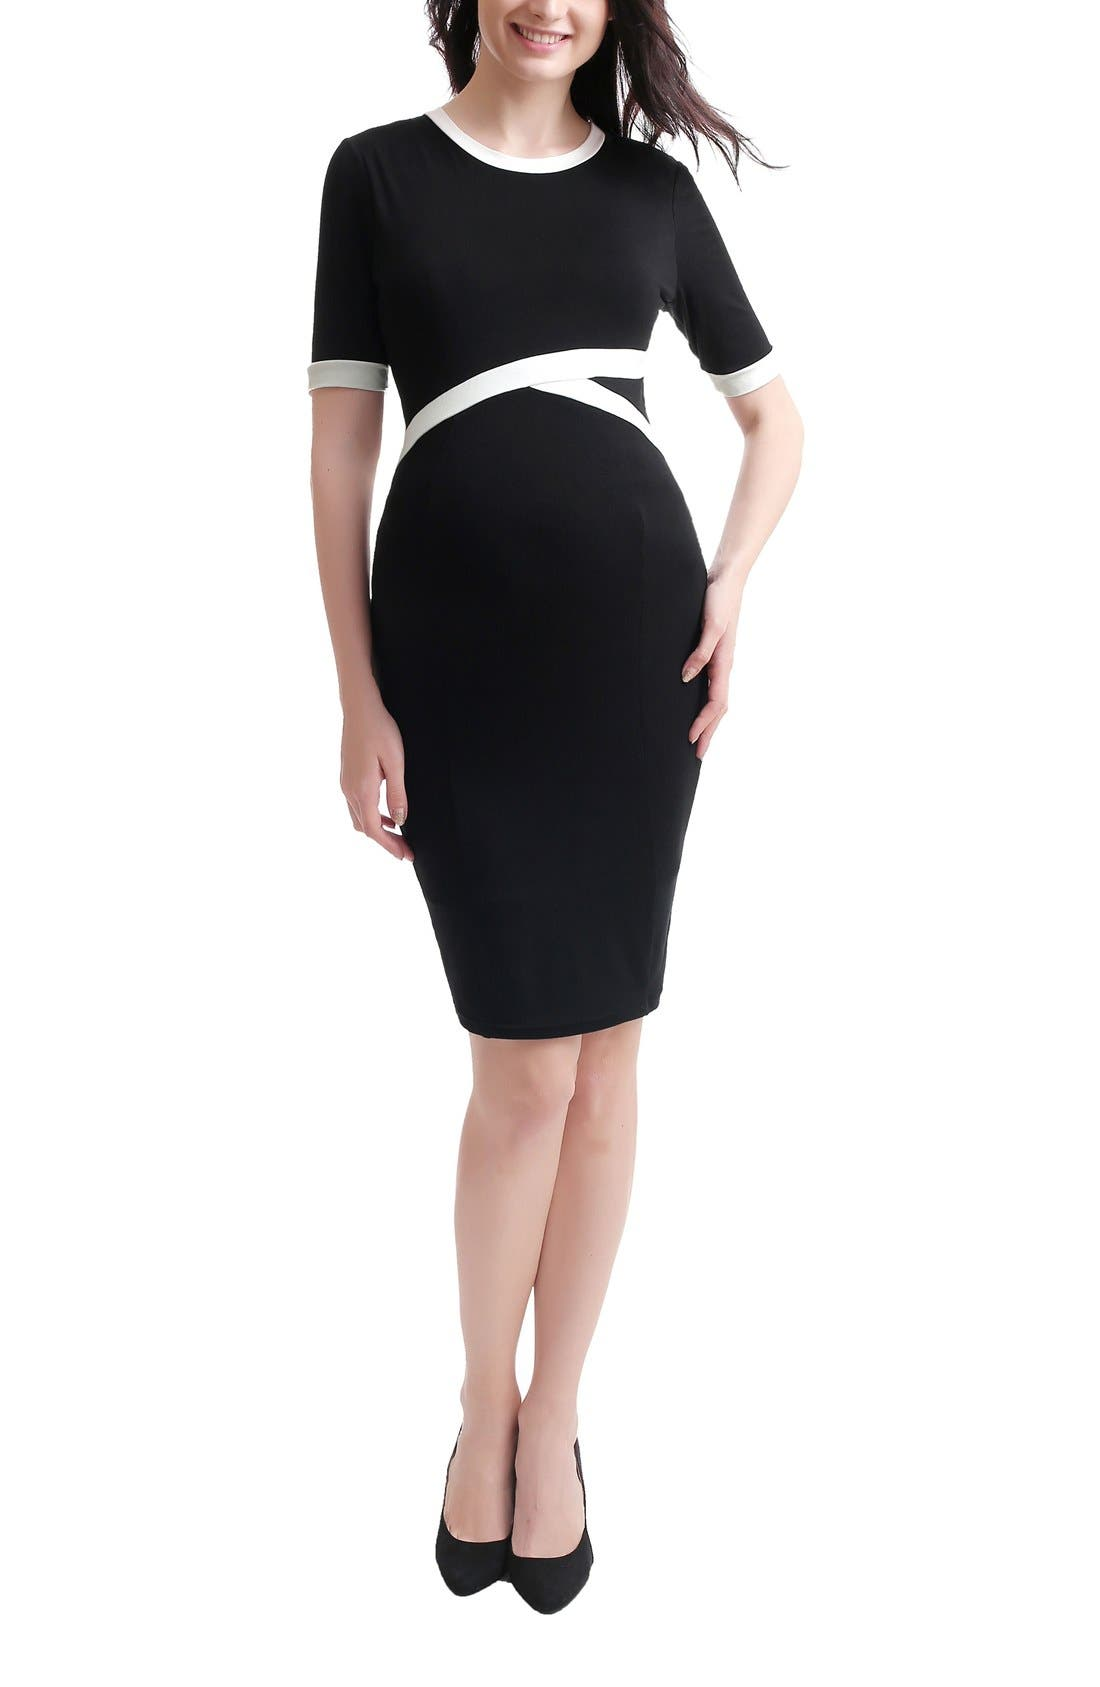 Iris Maternity Body-Con Dress,                             Main thumbnail 1, color,                             Black/ White